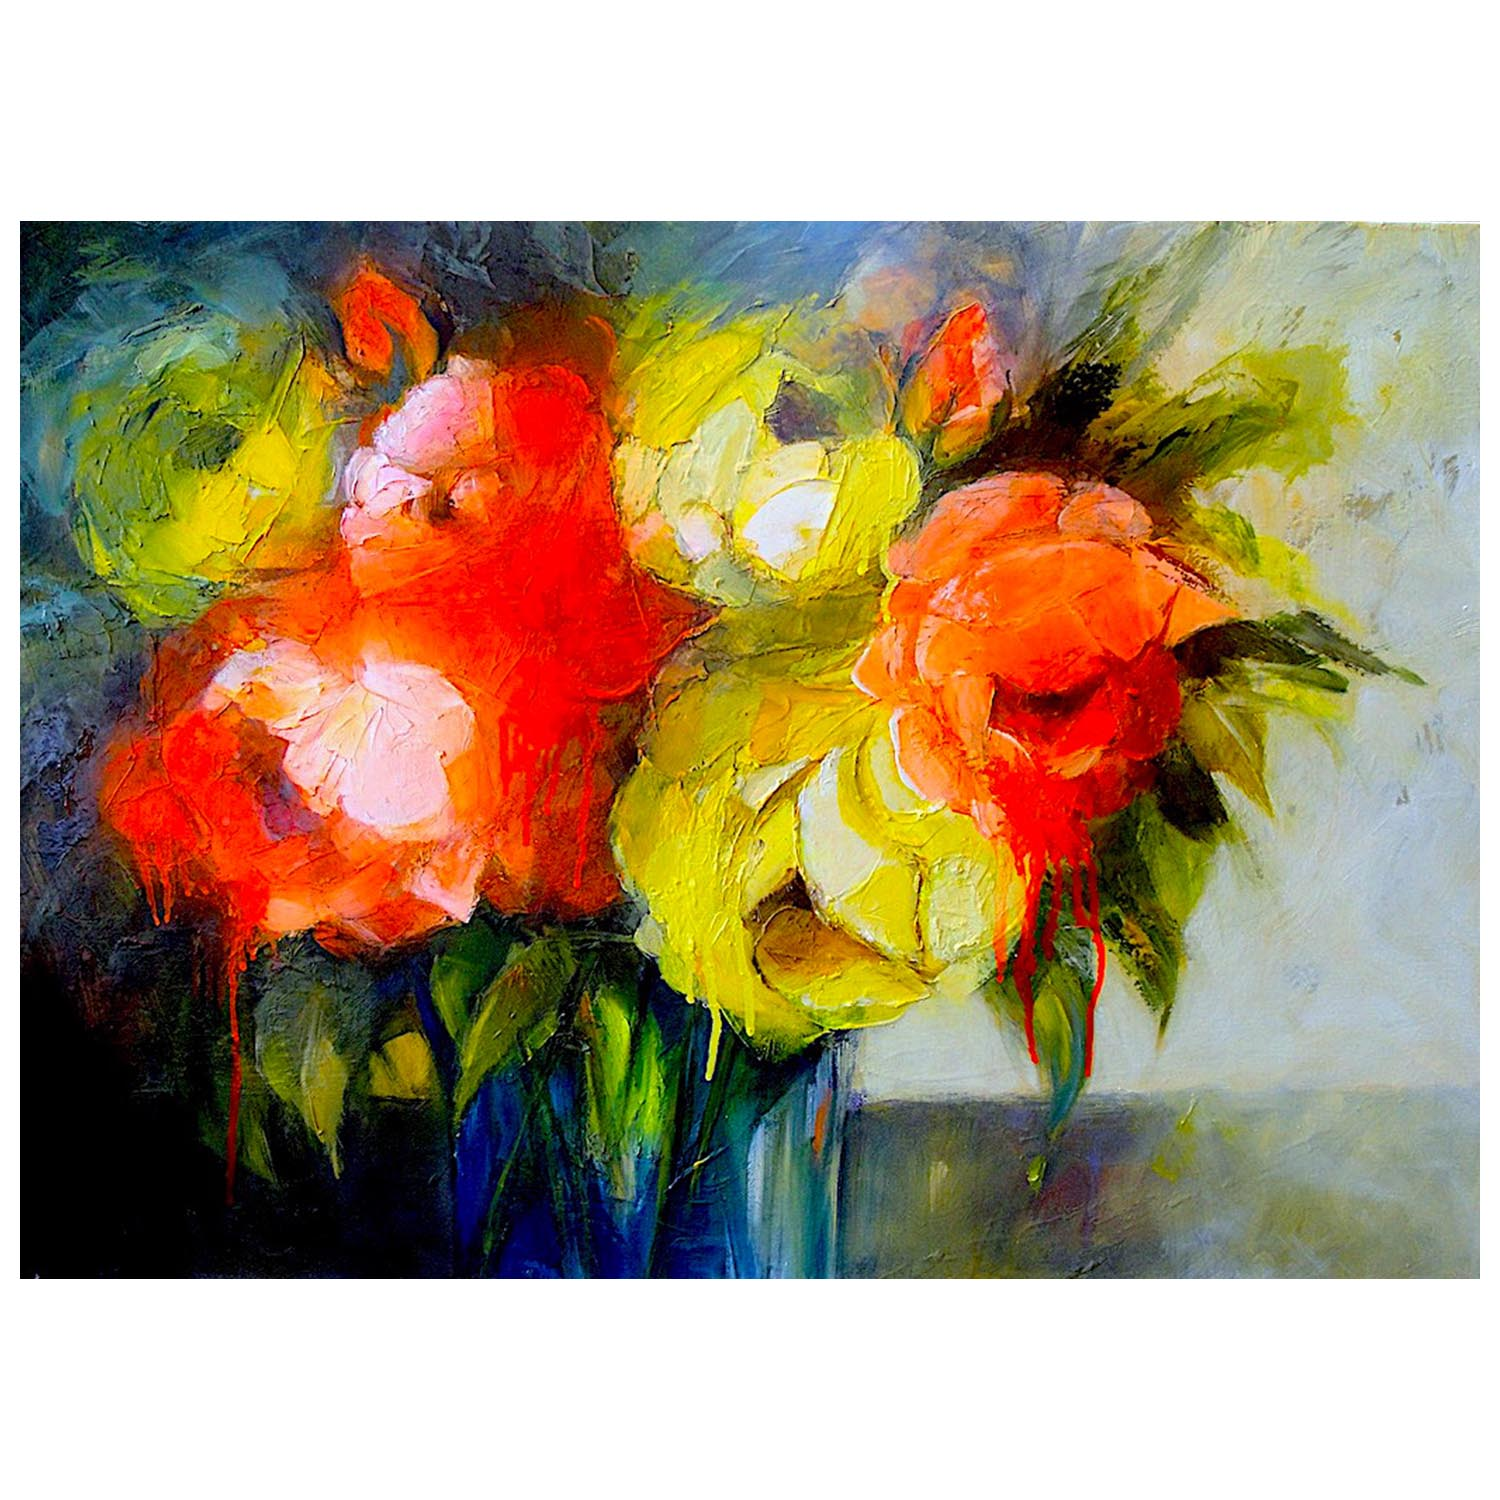 Brian Cowan, Dazzling Peonies Oil on canvas, 500x700mm £1850